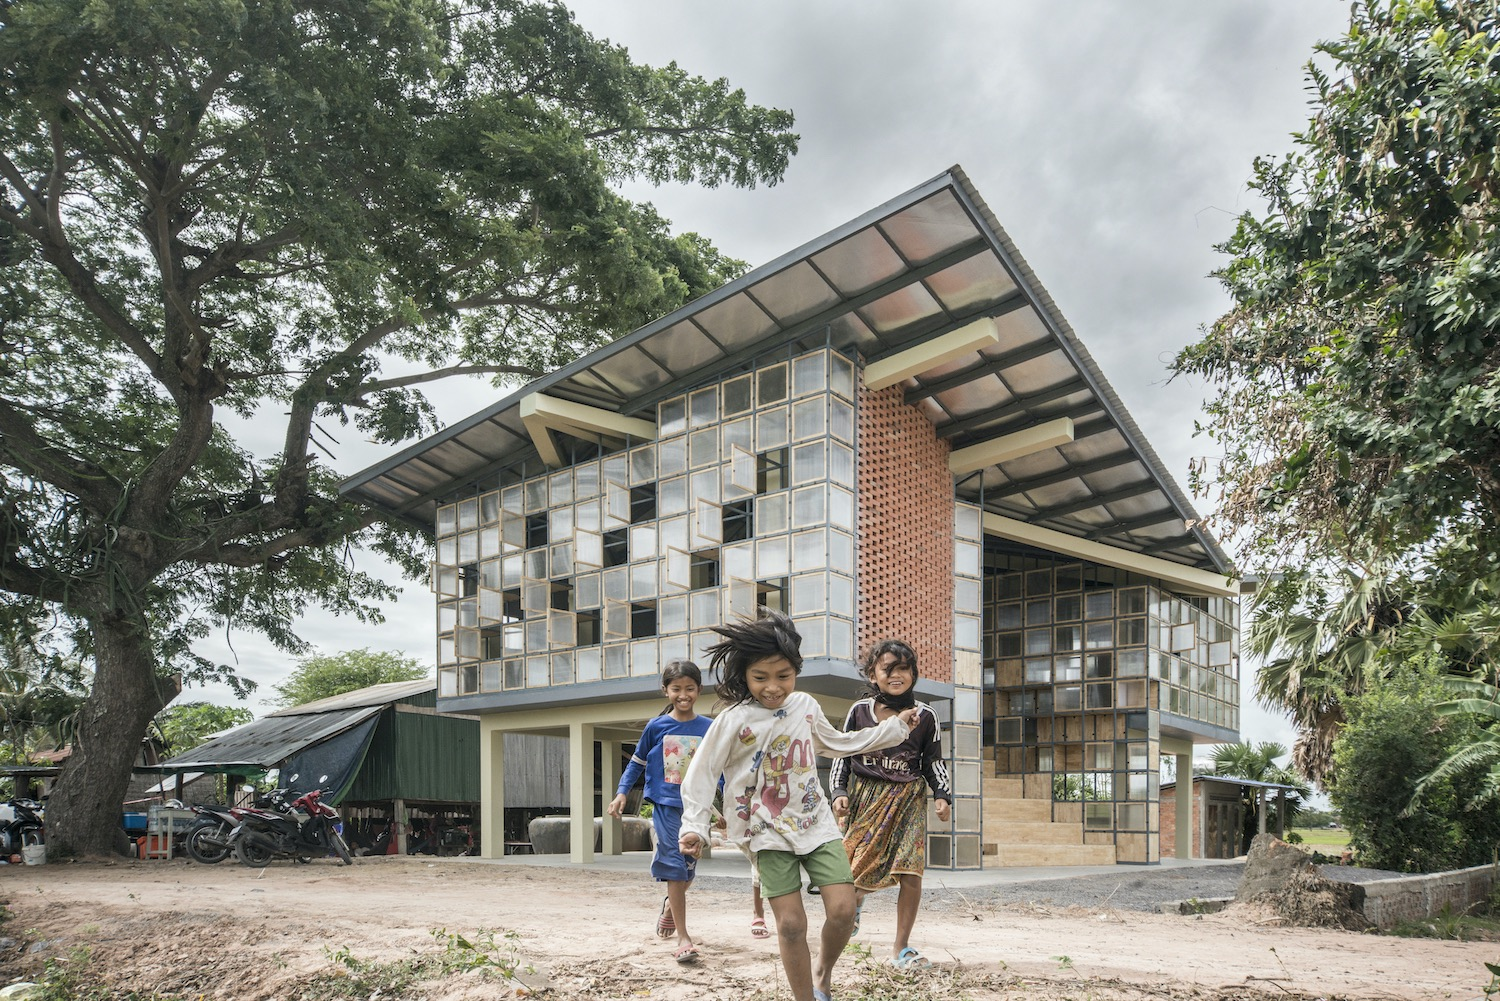 the kids are playing in front of a school surrounded by trees in Cambodia